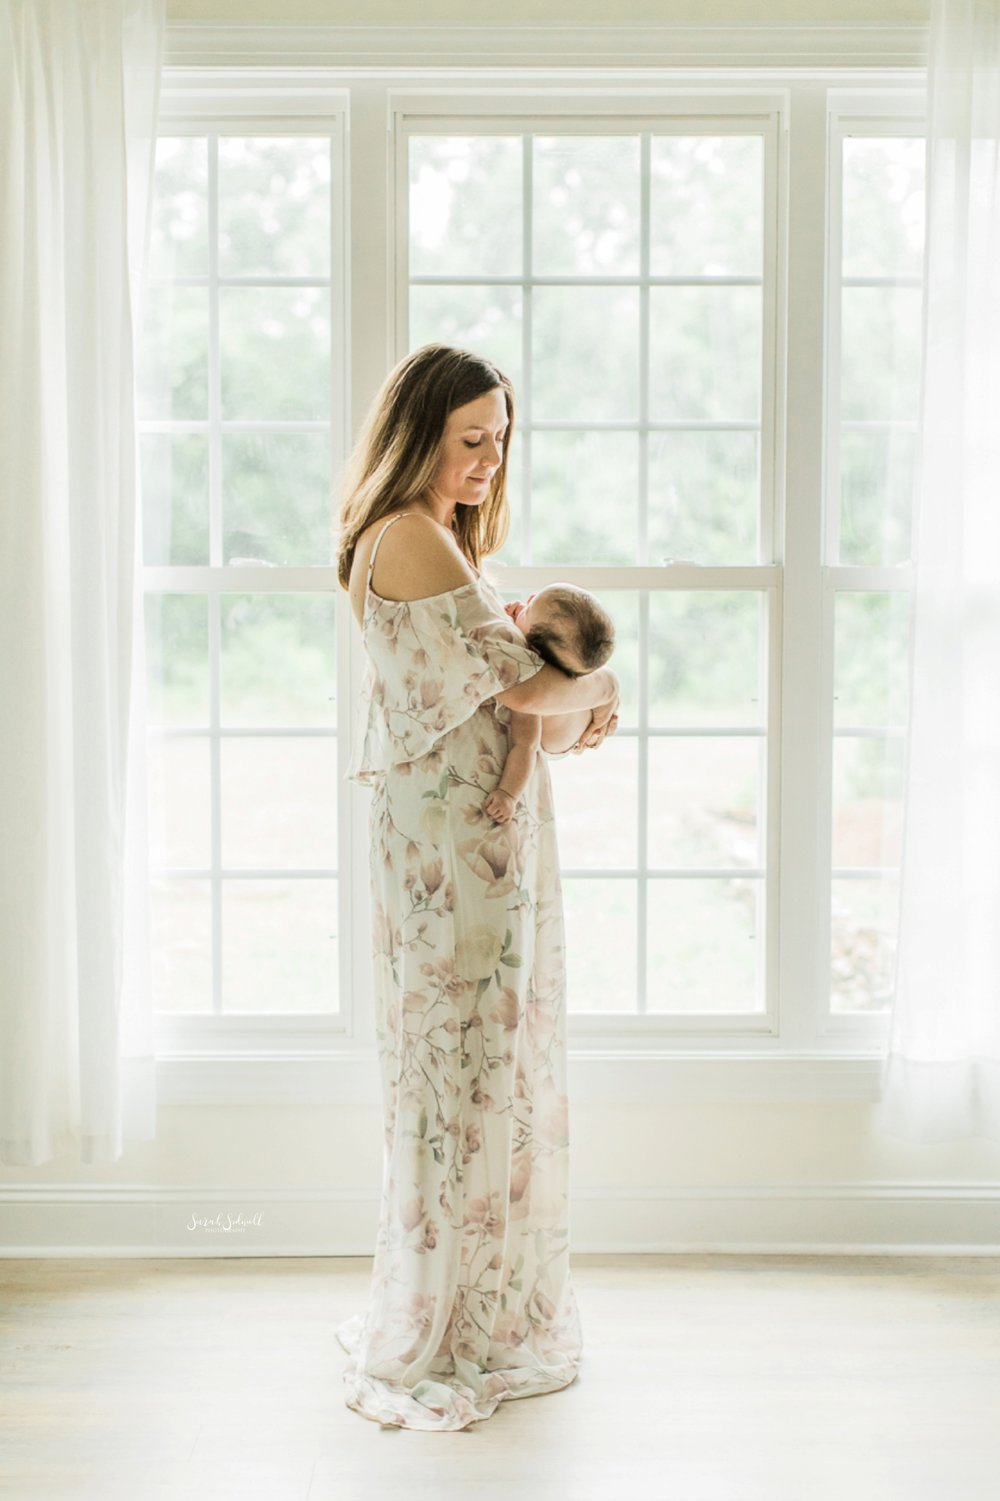 A new mother rocks her baby gently by a bright window.